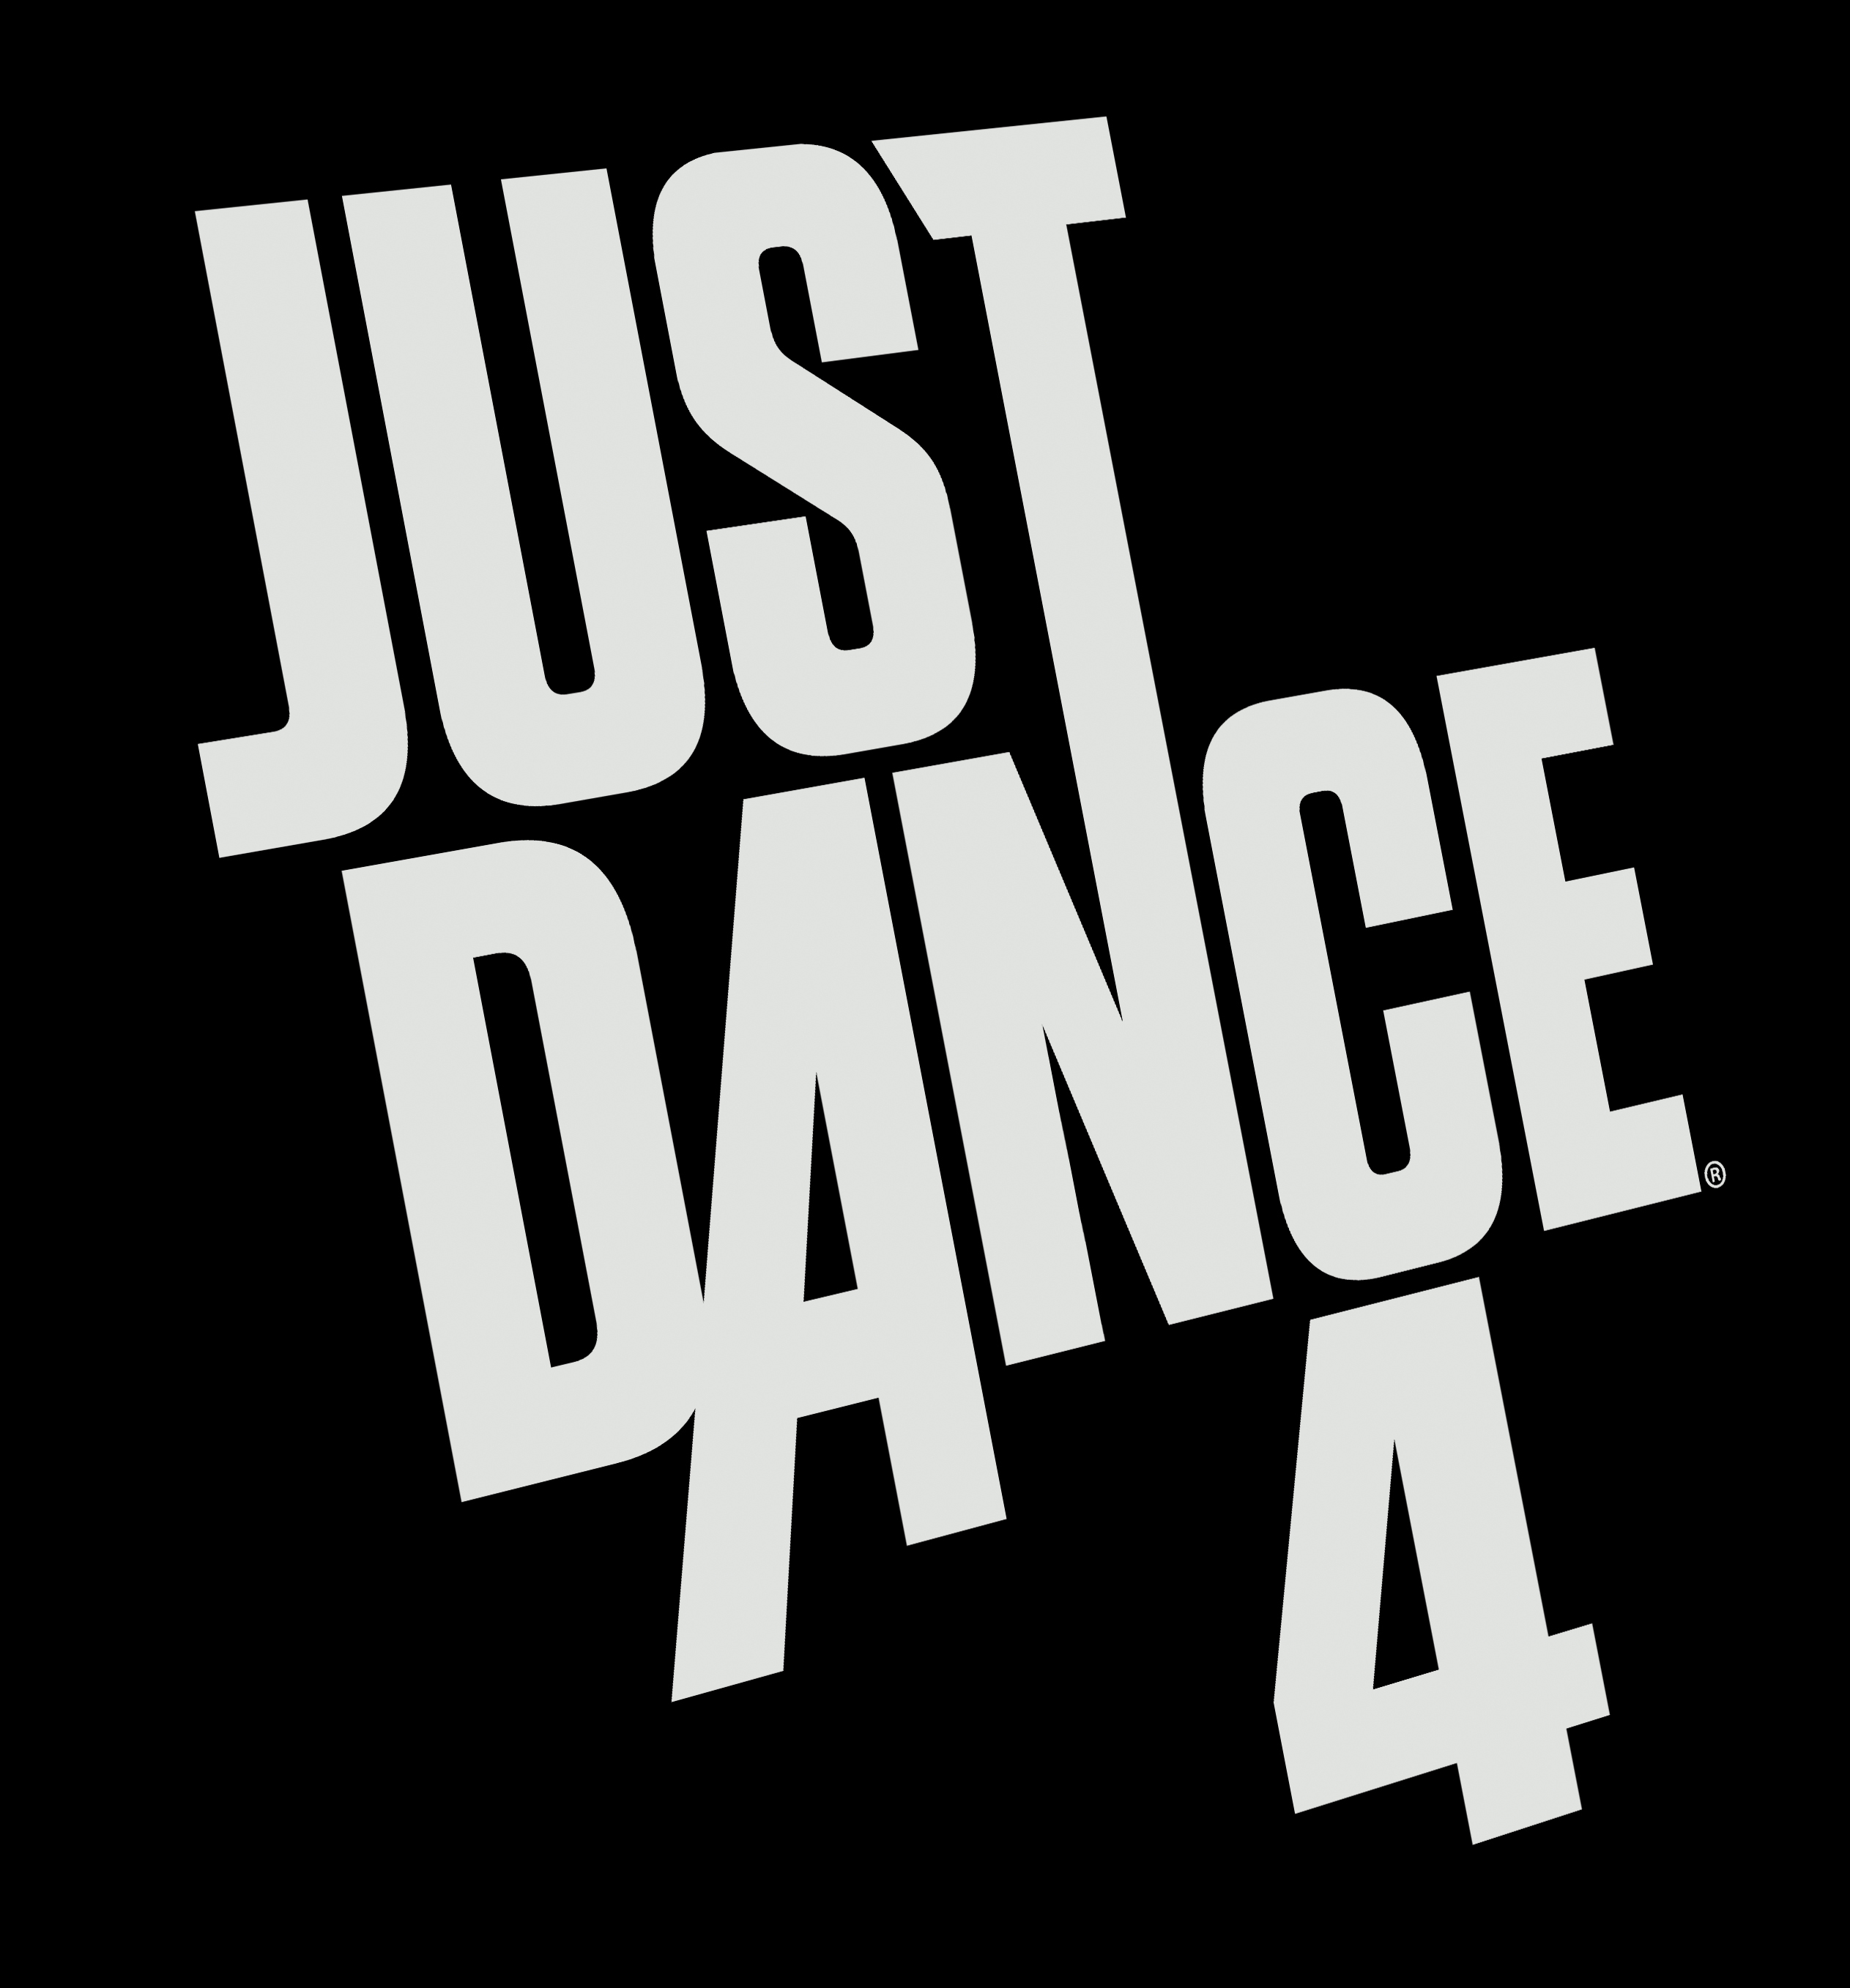 Just Dance 4 fact sheet and images